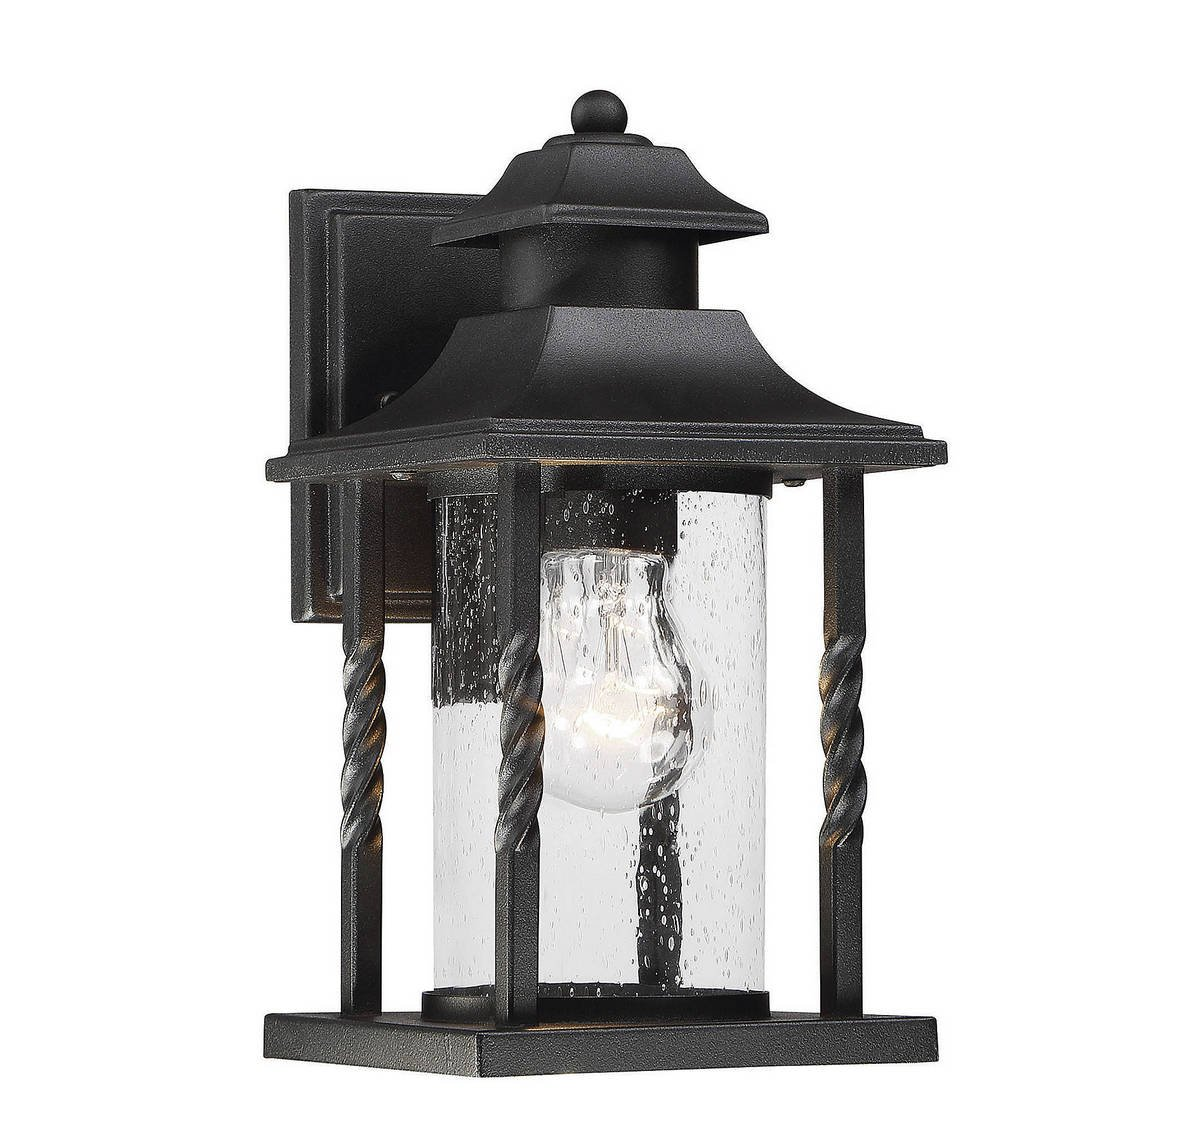 Savoy House 5-1230-BK Dorado 11.5'' Outdoor Wall Lantern in Textured Black